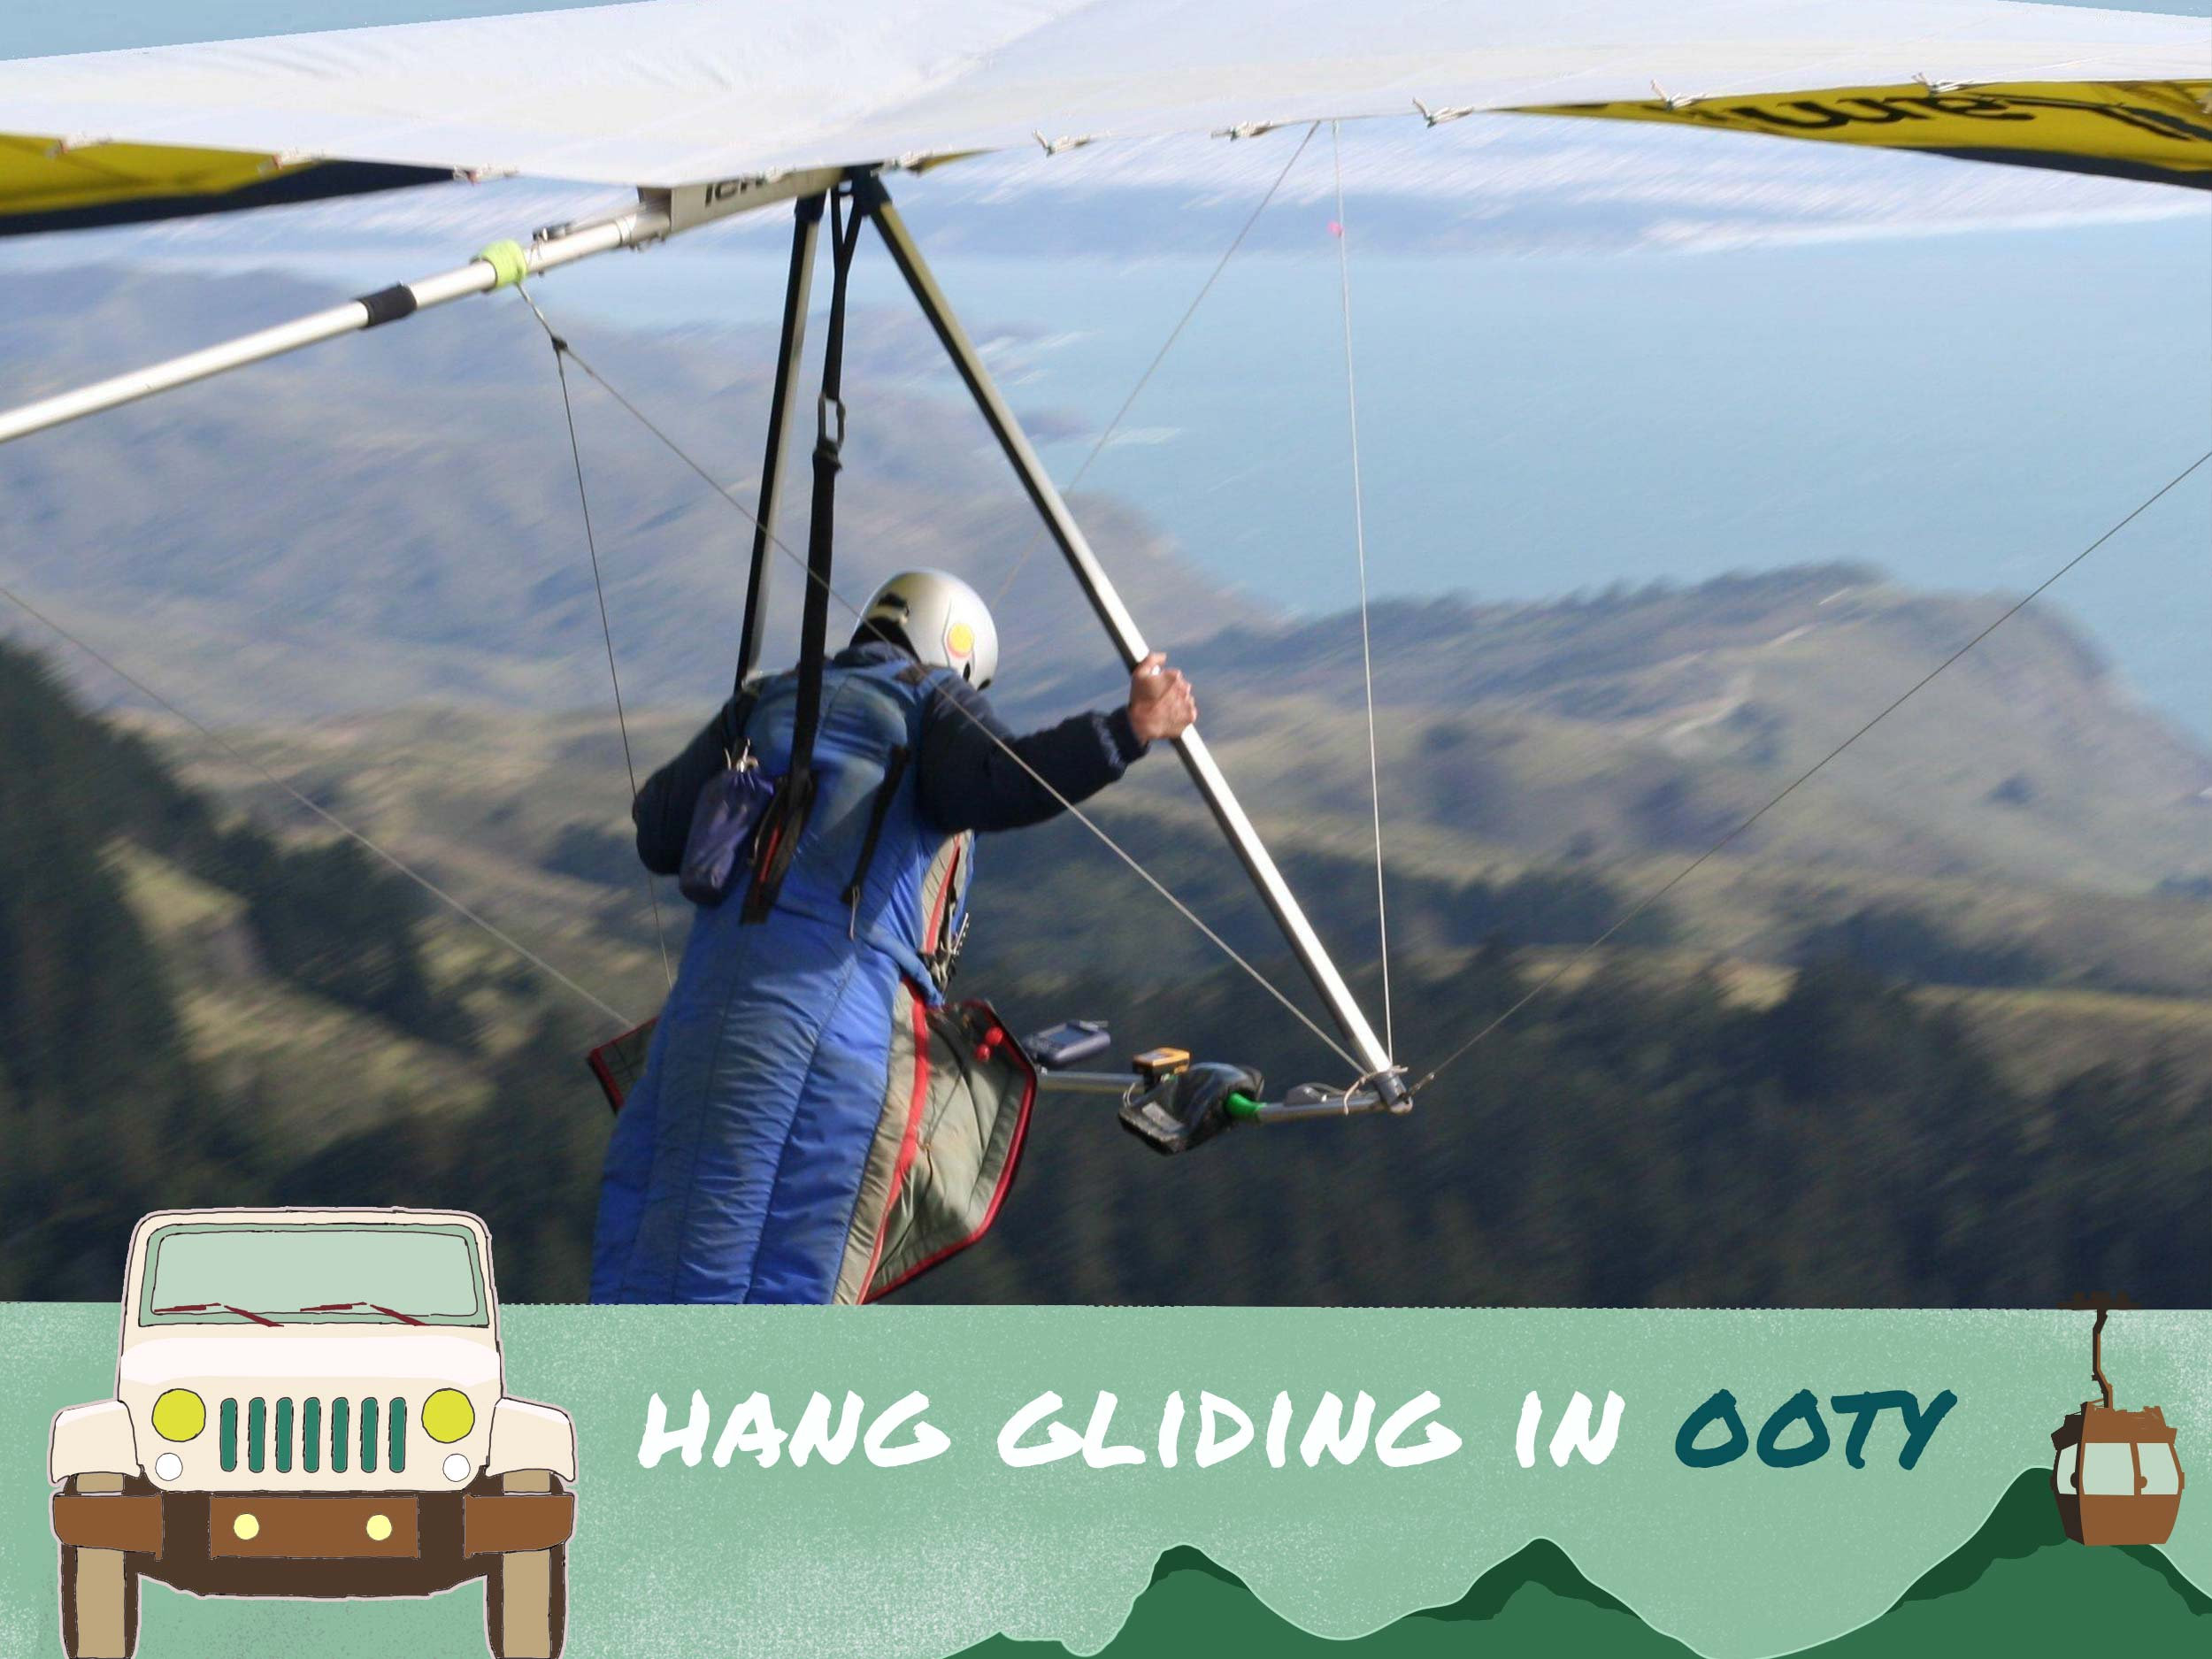 Hang gliding Ooty